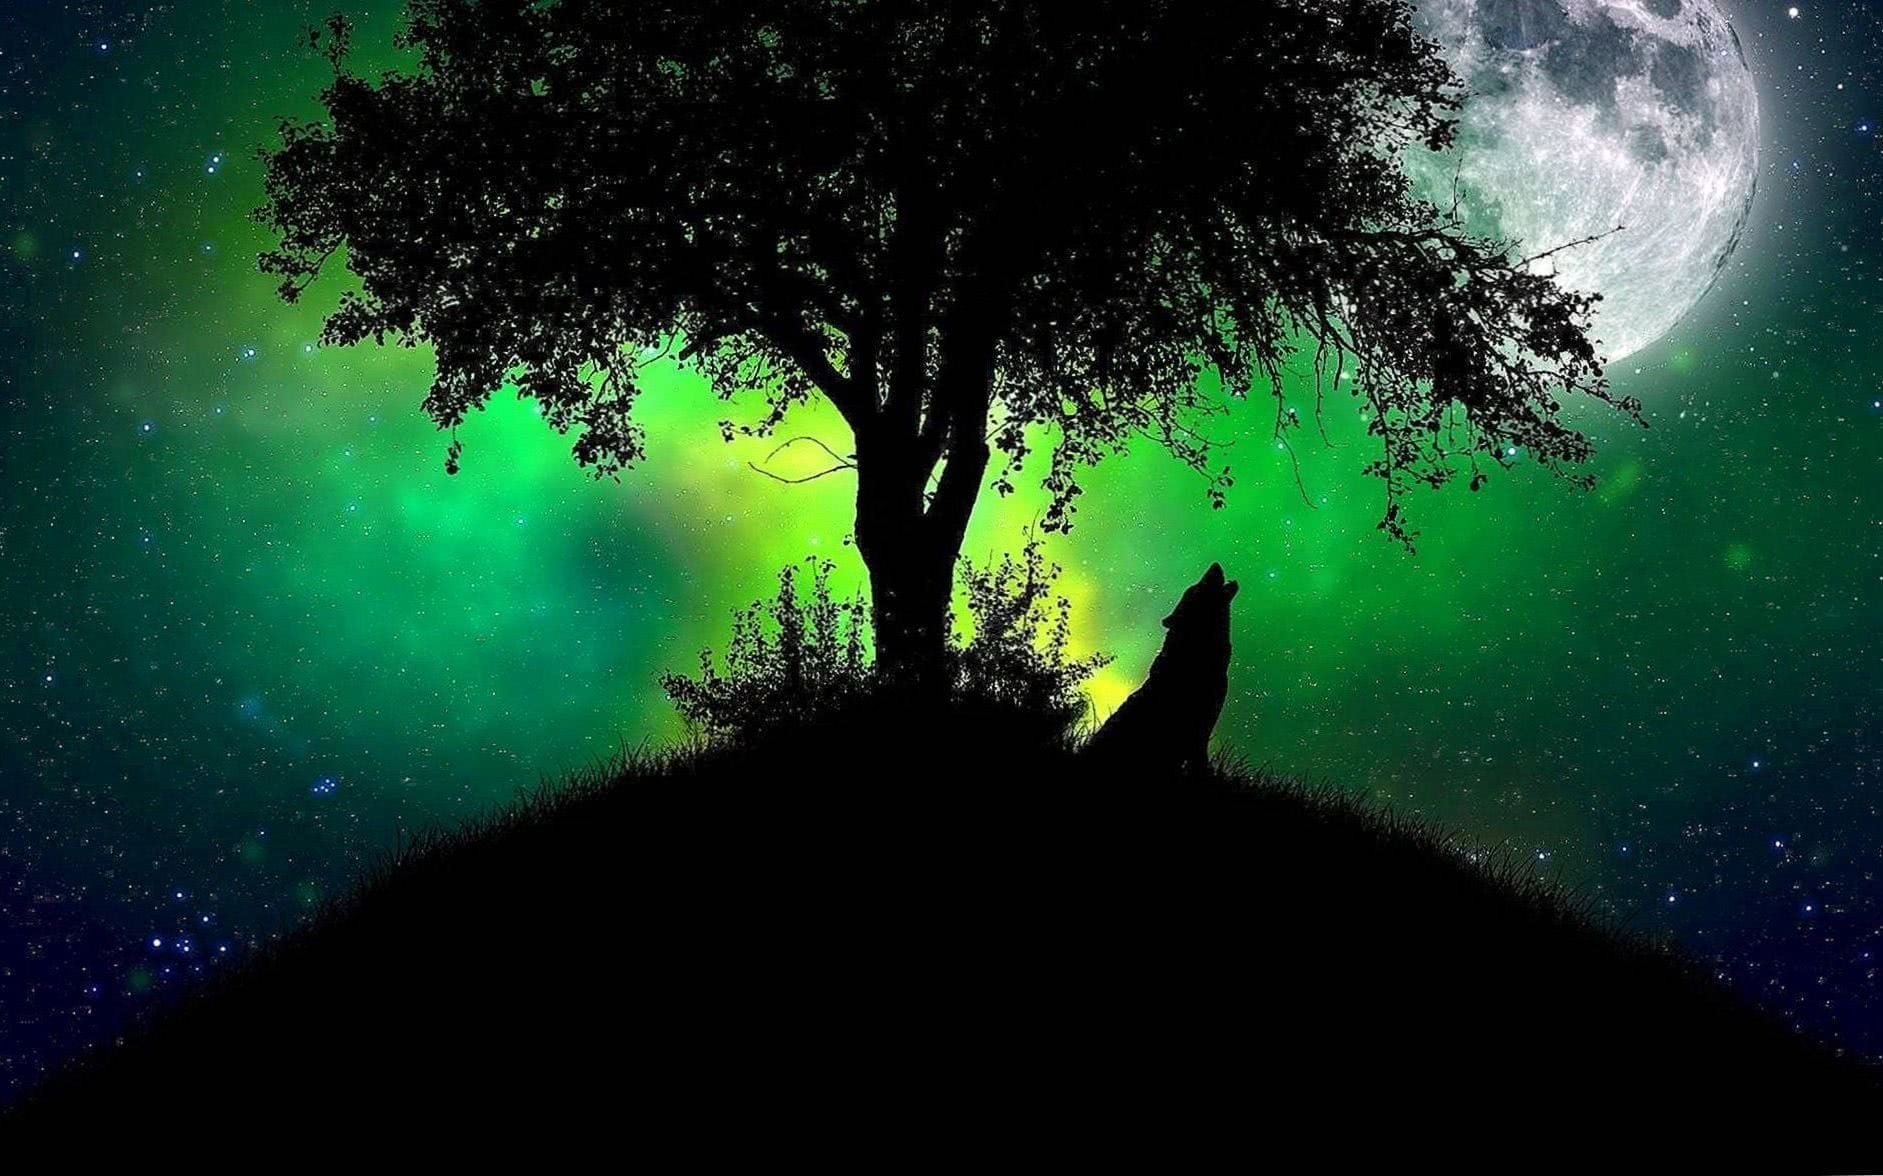 Wallpaper Moon And Wolf